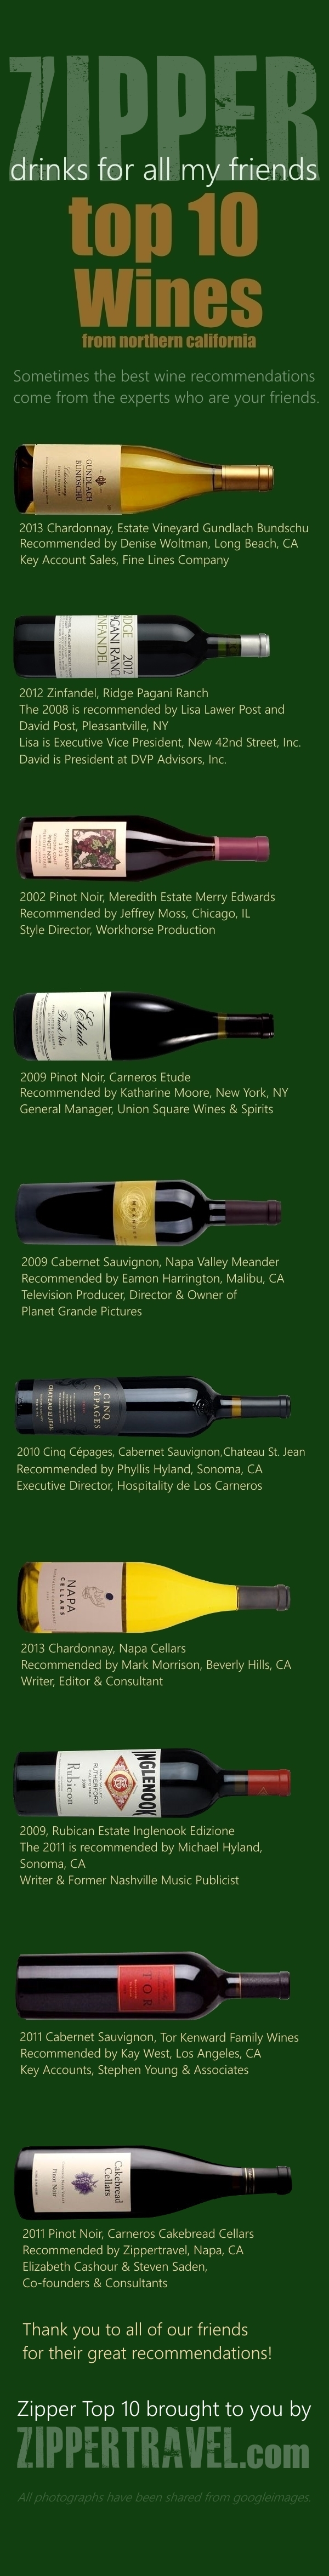 list of top 10 northern california wines